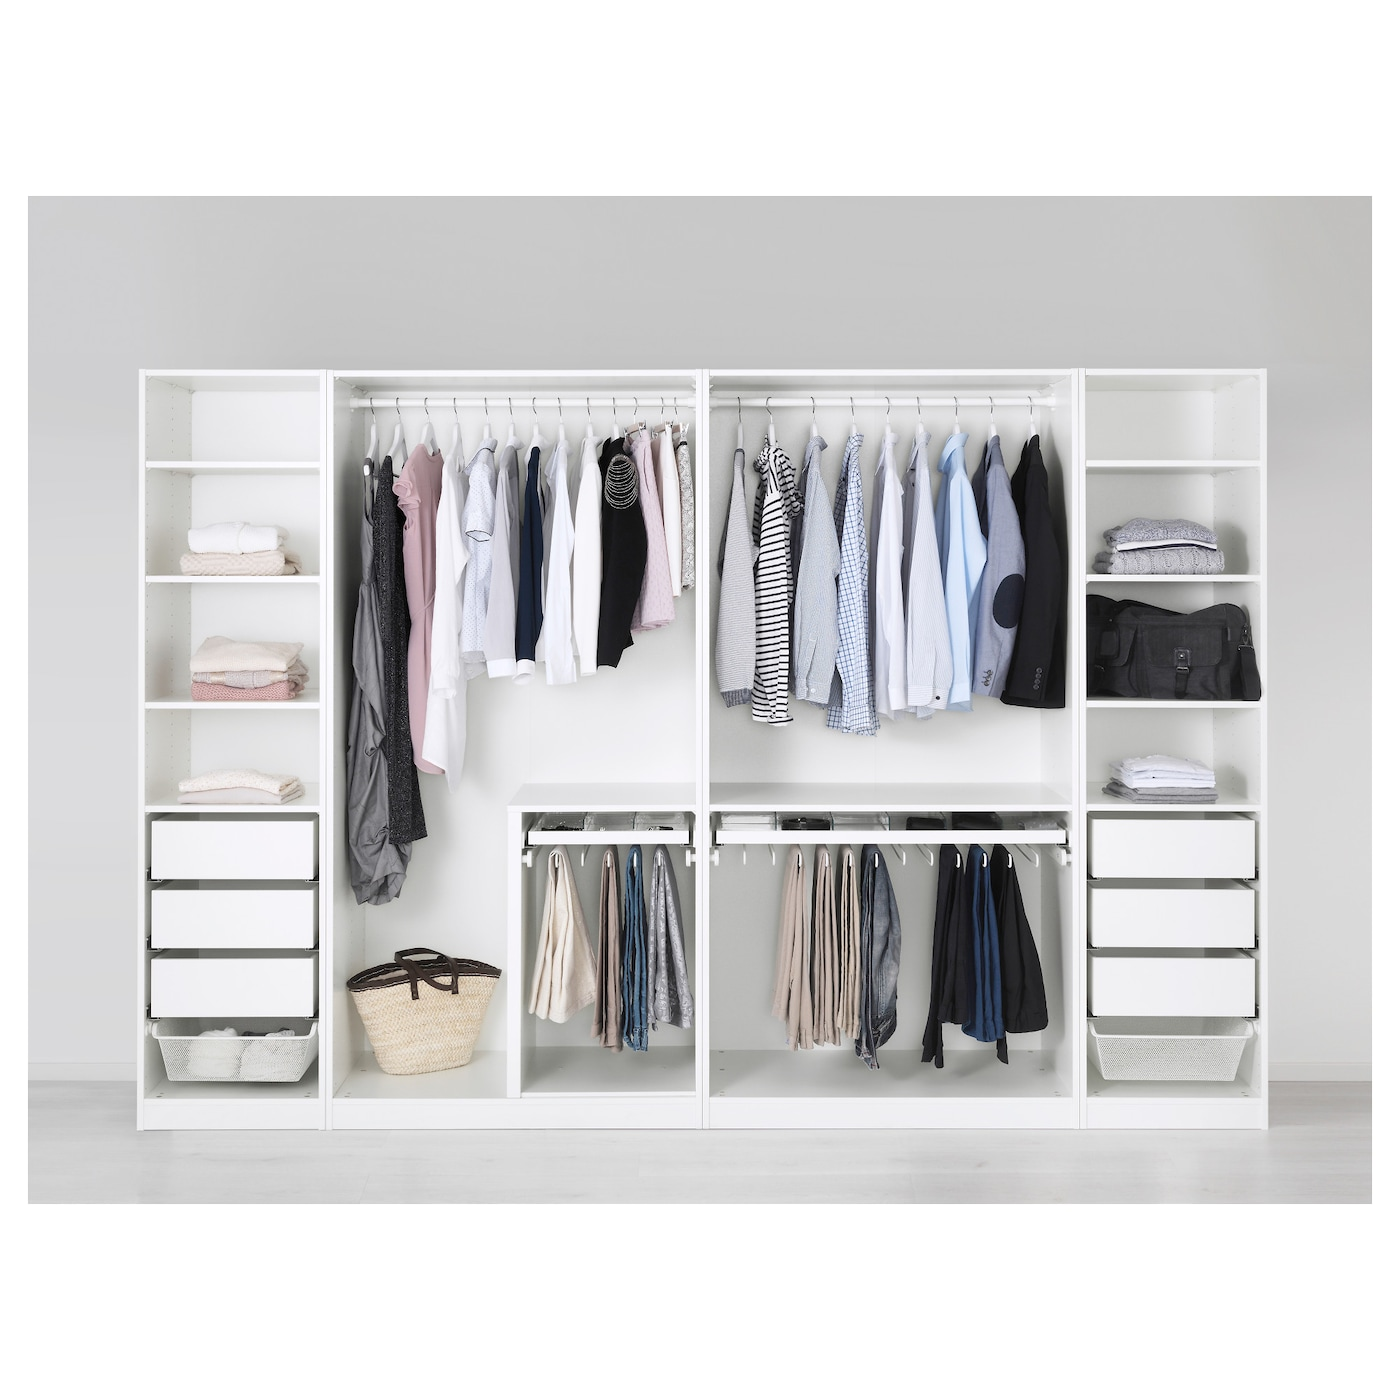 pax wardrobe white fardal high gloss white 300x60x201 cm. Black Bedroom Furniture Sets. Home Design Ideas